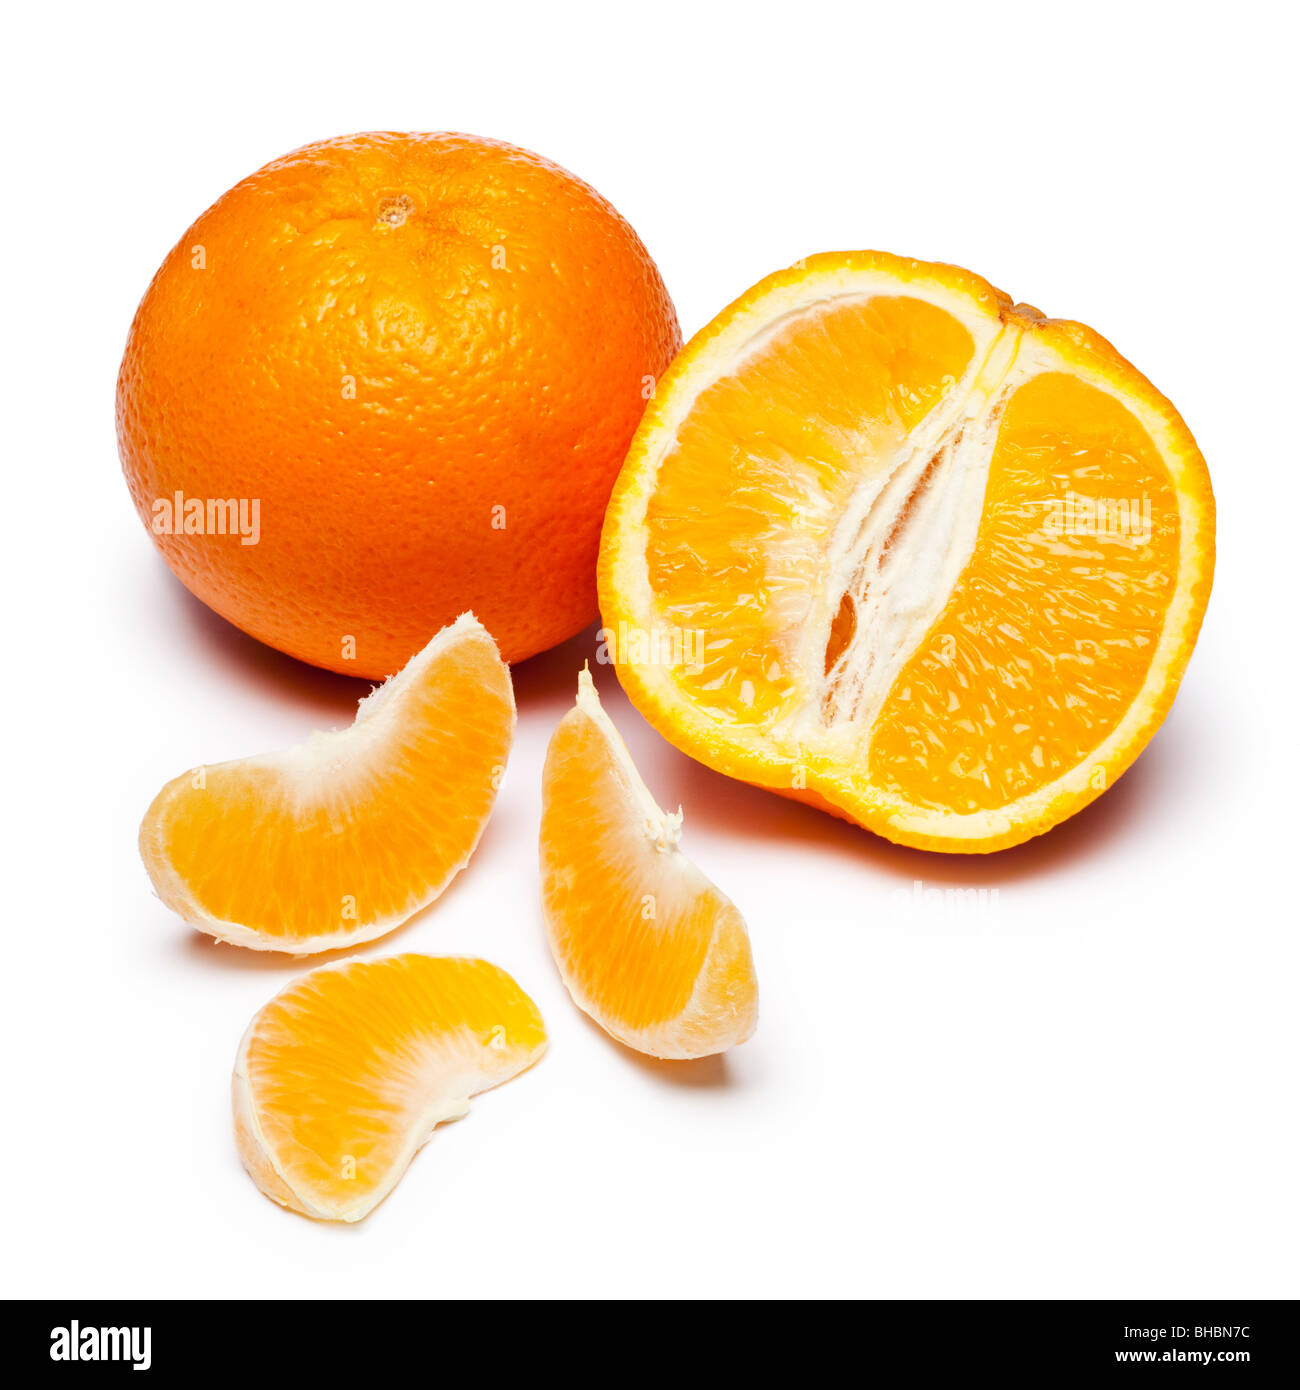 Oranges whole and halved with segments - Stock Image